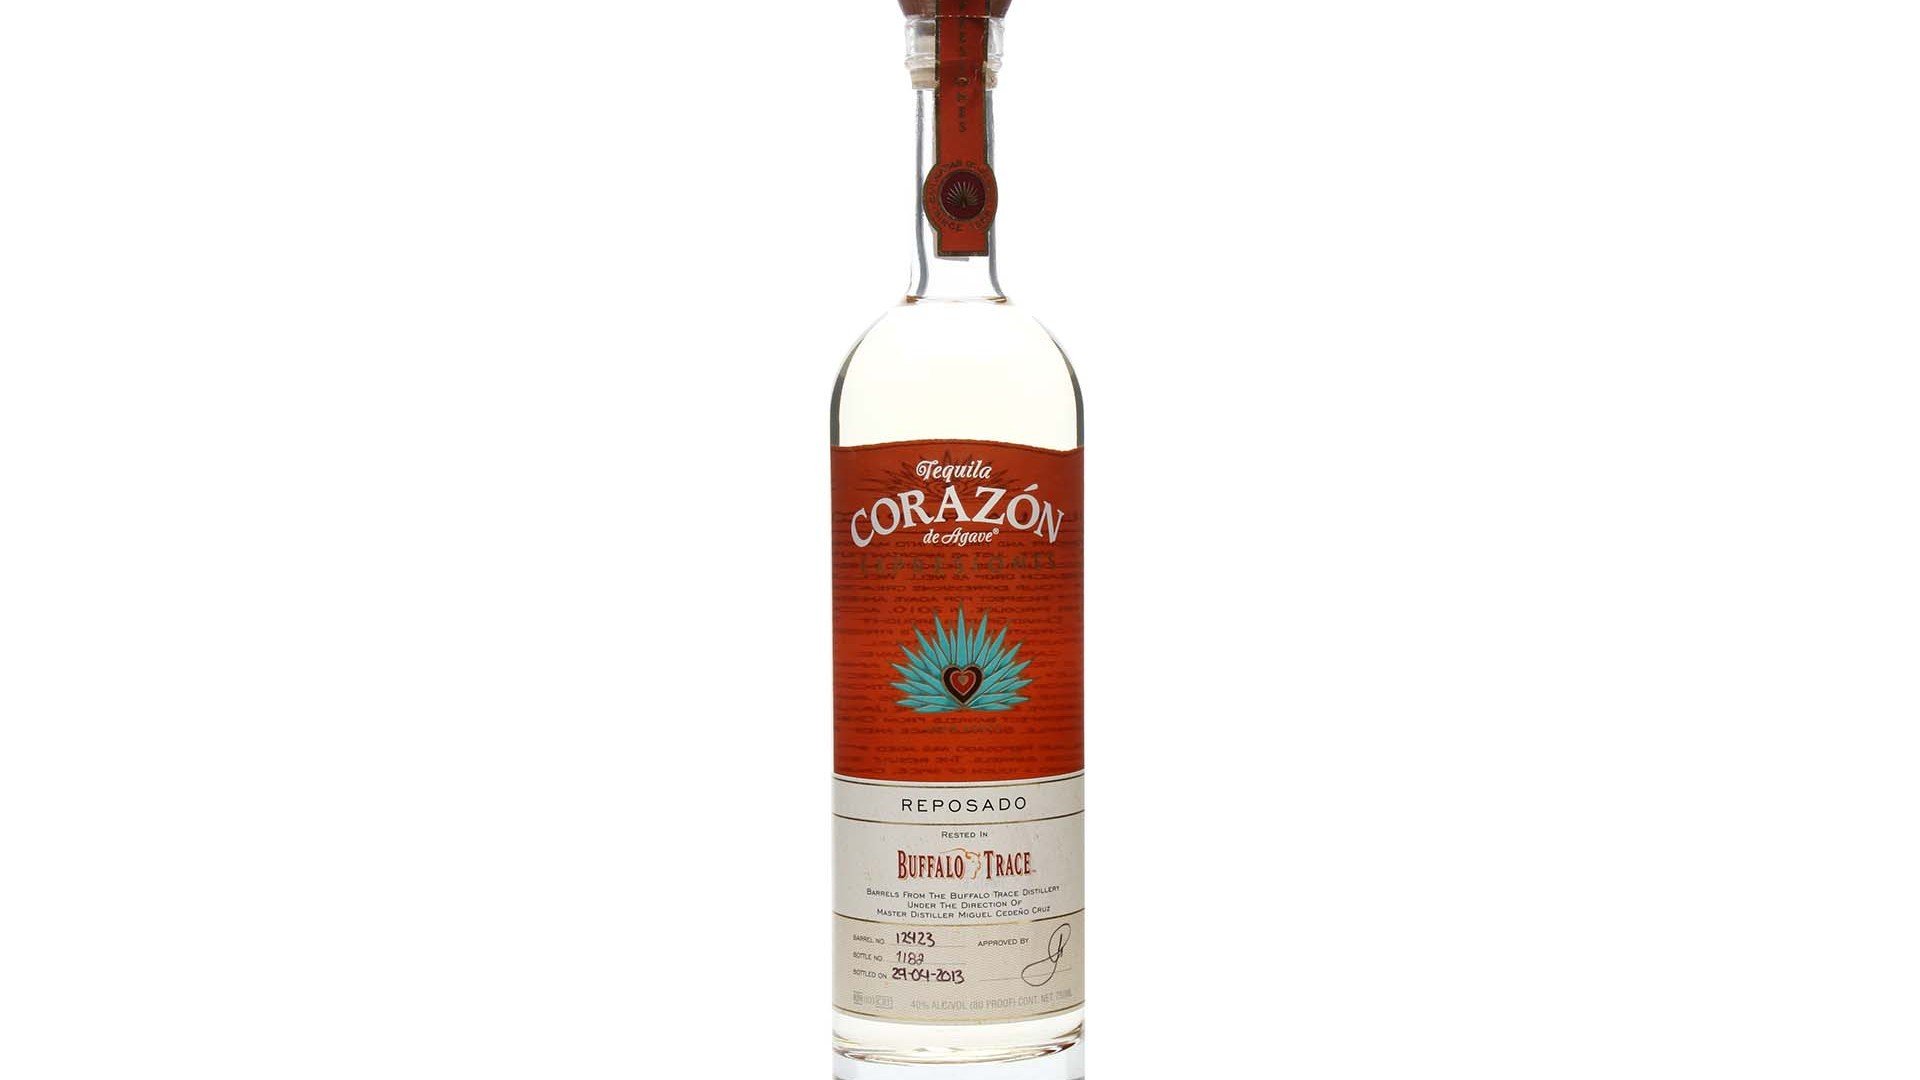 Corazon Buffalo Trace Reposado